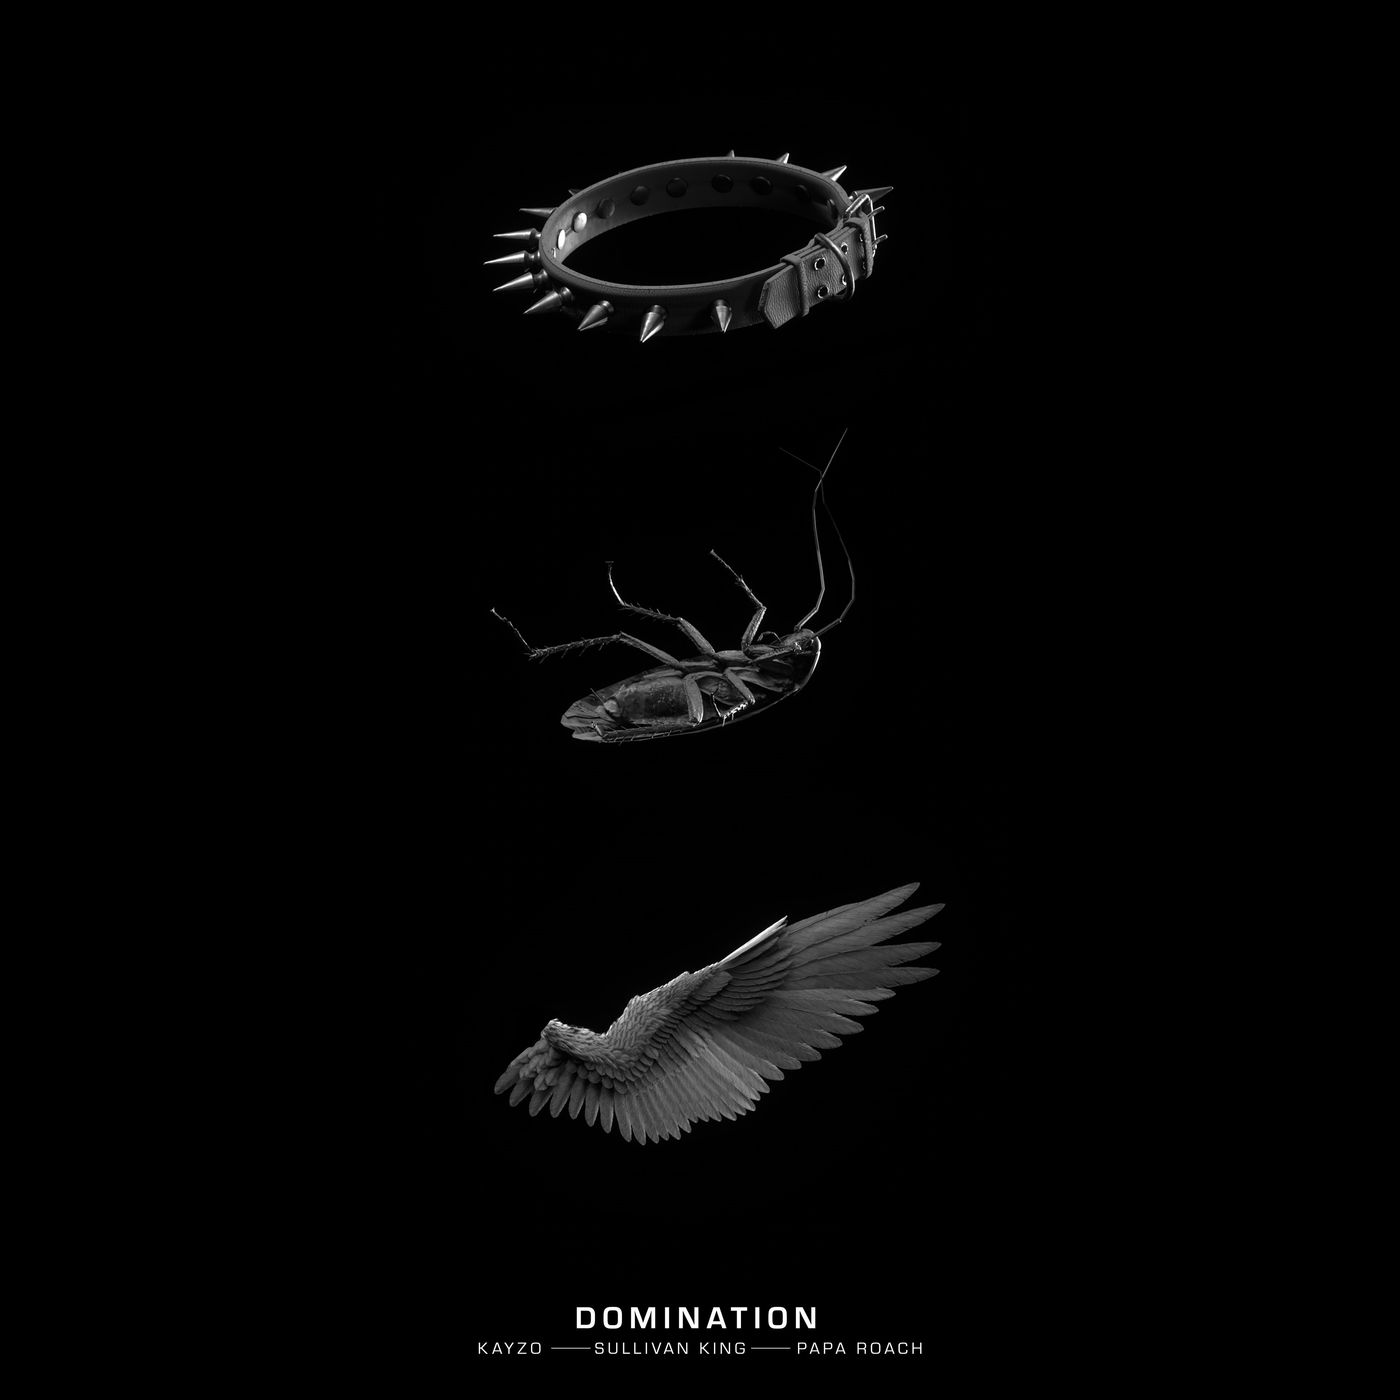 Kayzo & Sullivan King & Papa Roach - DOMINATION [single] (2021)